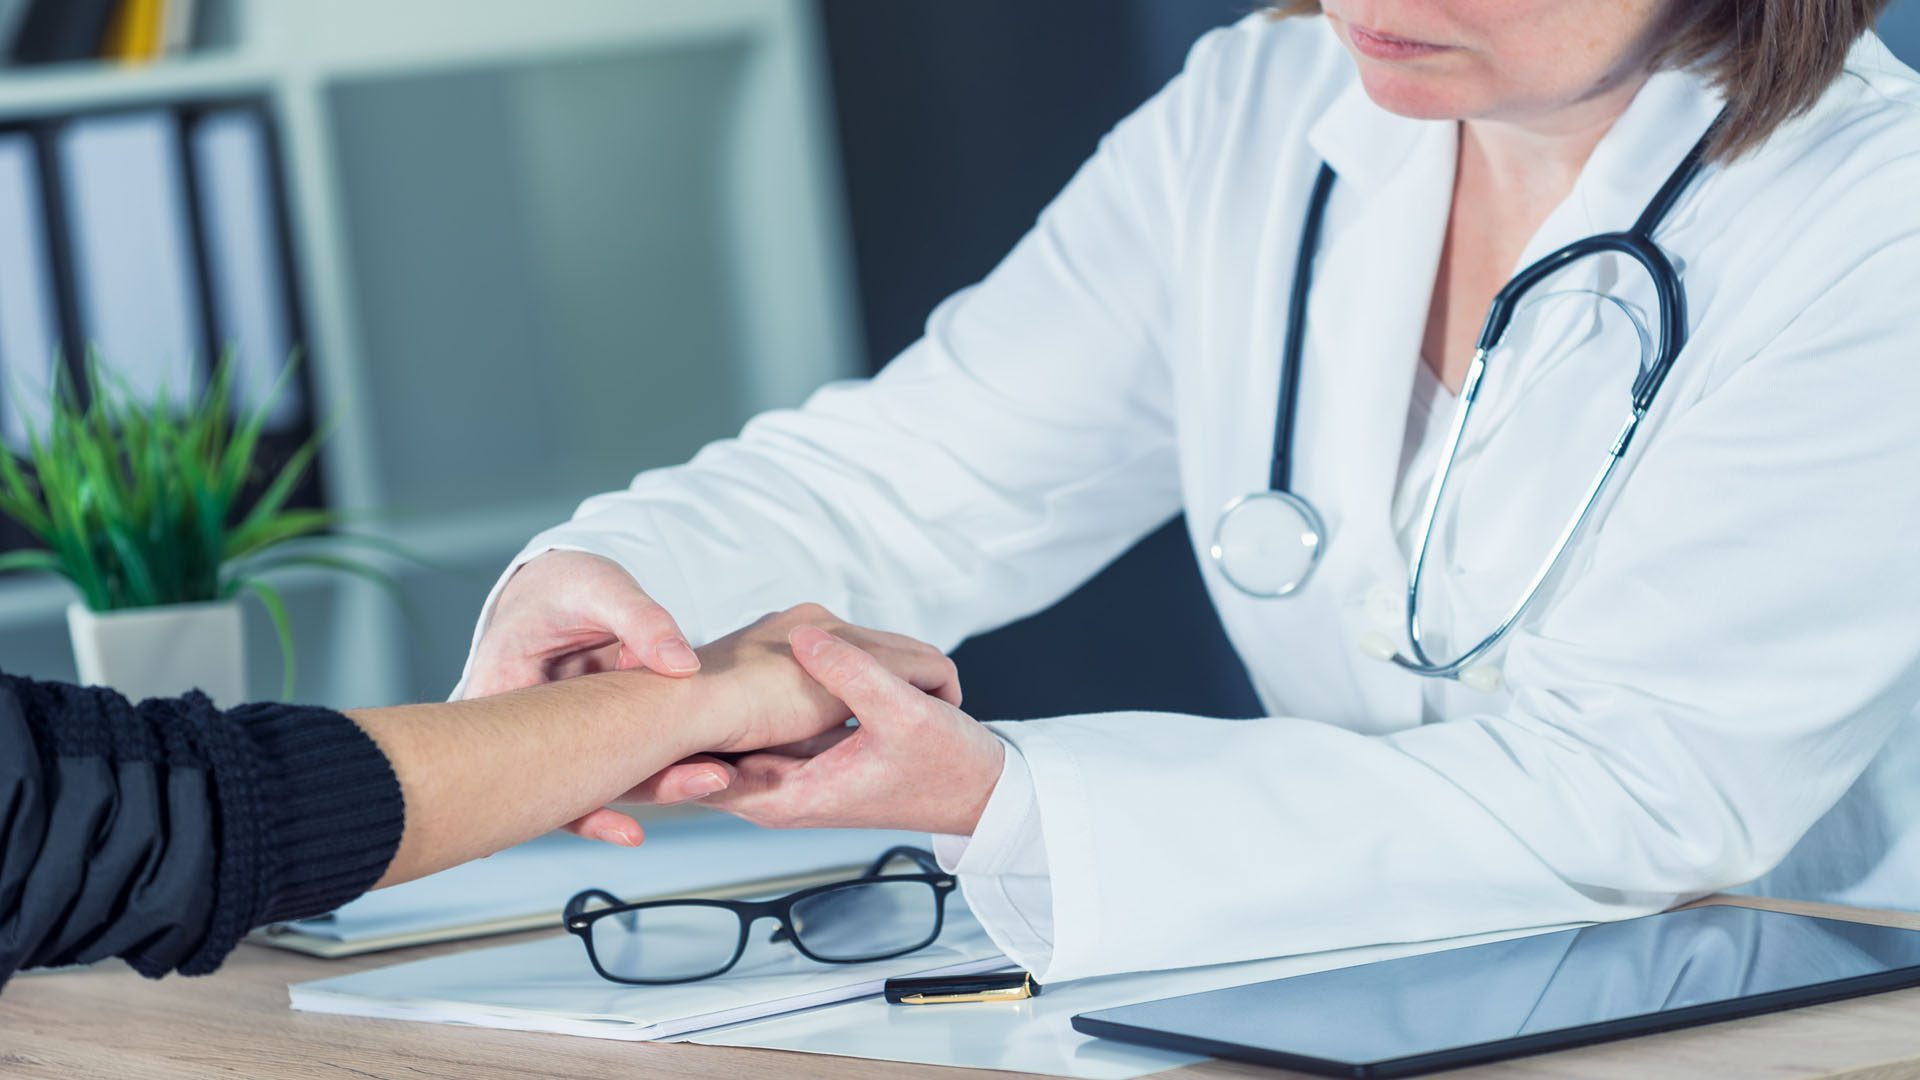 11860 Vista Del Sol Ste. 128 Carpal Tunnel Sufferers Benefit from Chiropractic El Paso, TX.